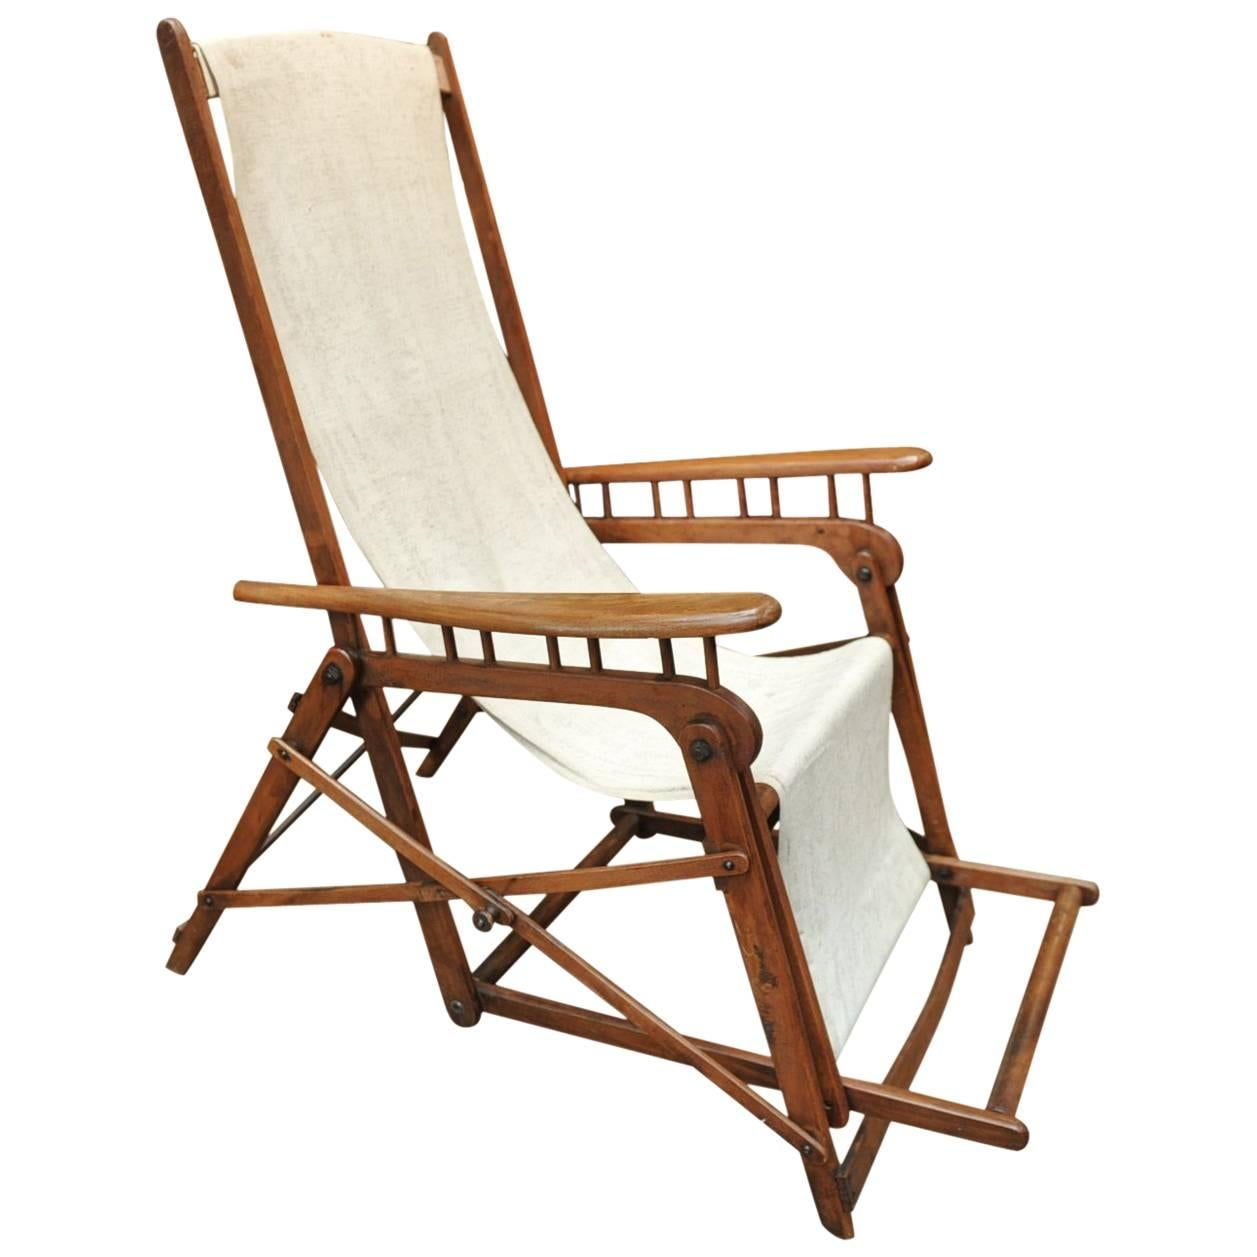 Chair Asca Longue System French Folding By 1920s b6ygvIYf7m